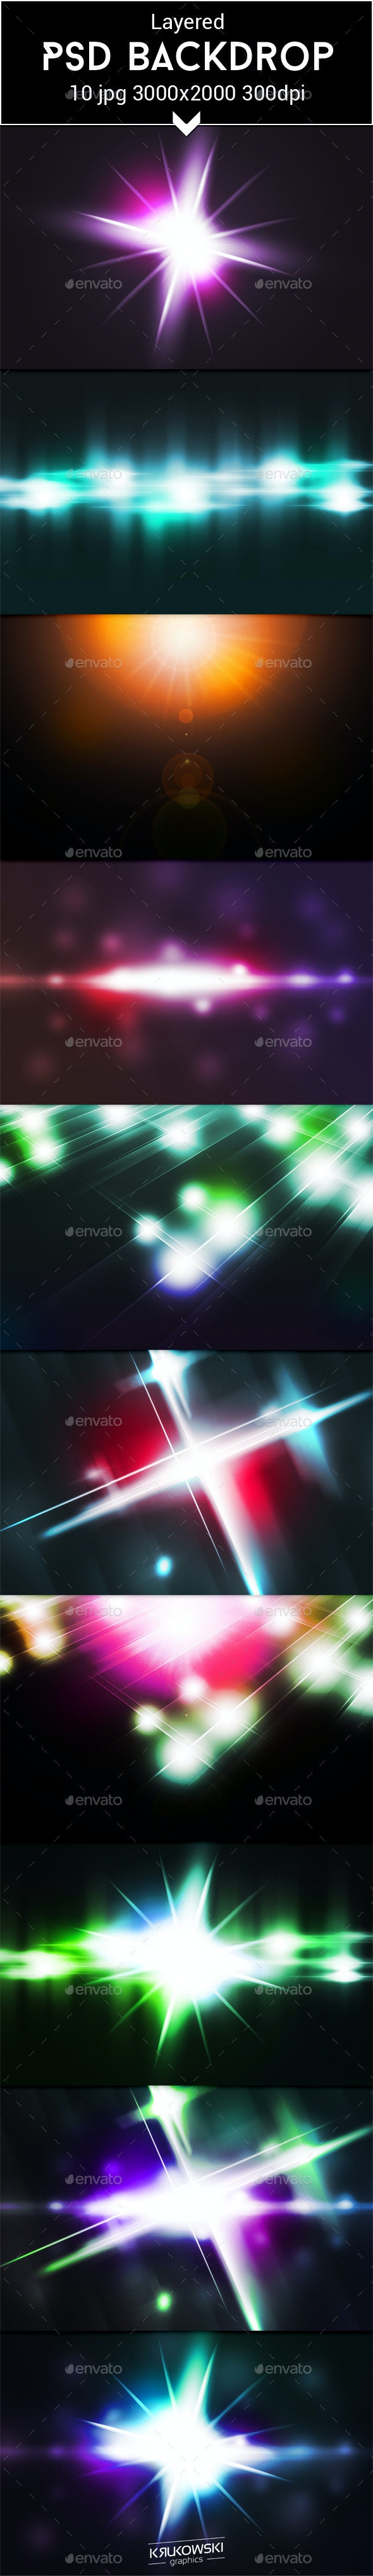 Light Flare PSD Backdrop - Miscellaneous Backgrounds